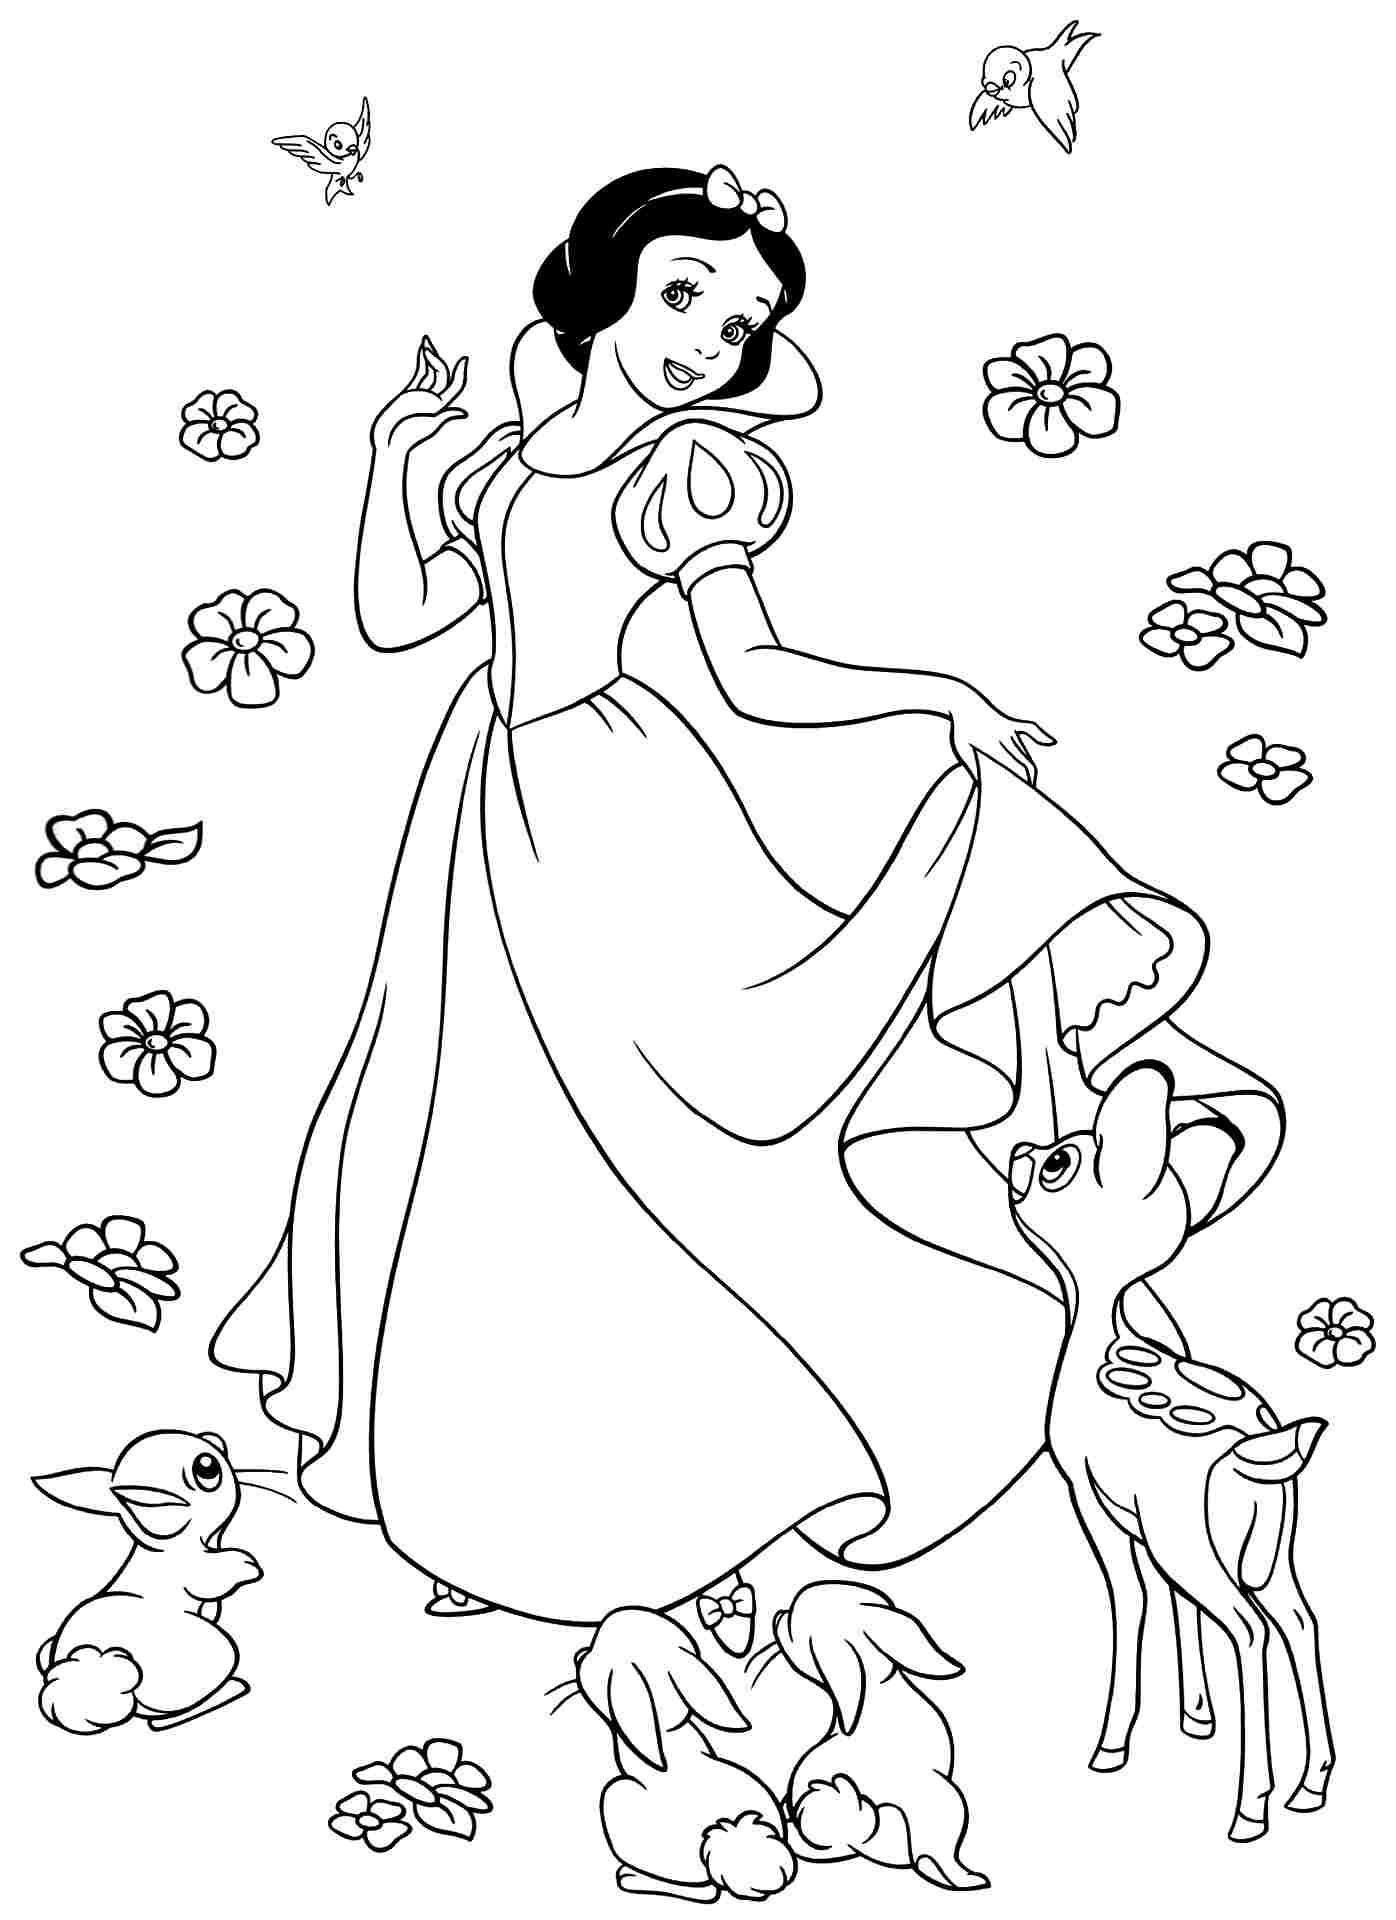 Snow White And The Seven Dwarfs Coloring Pages 49 Jpg 1396 1920